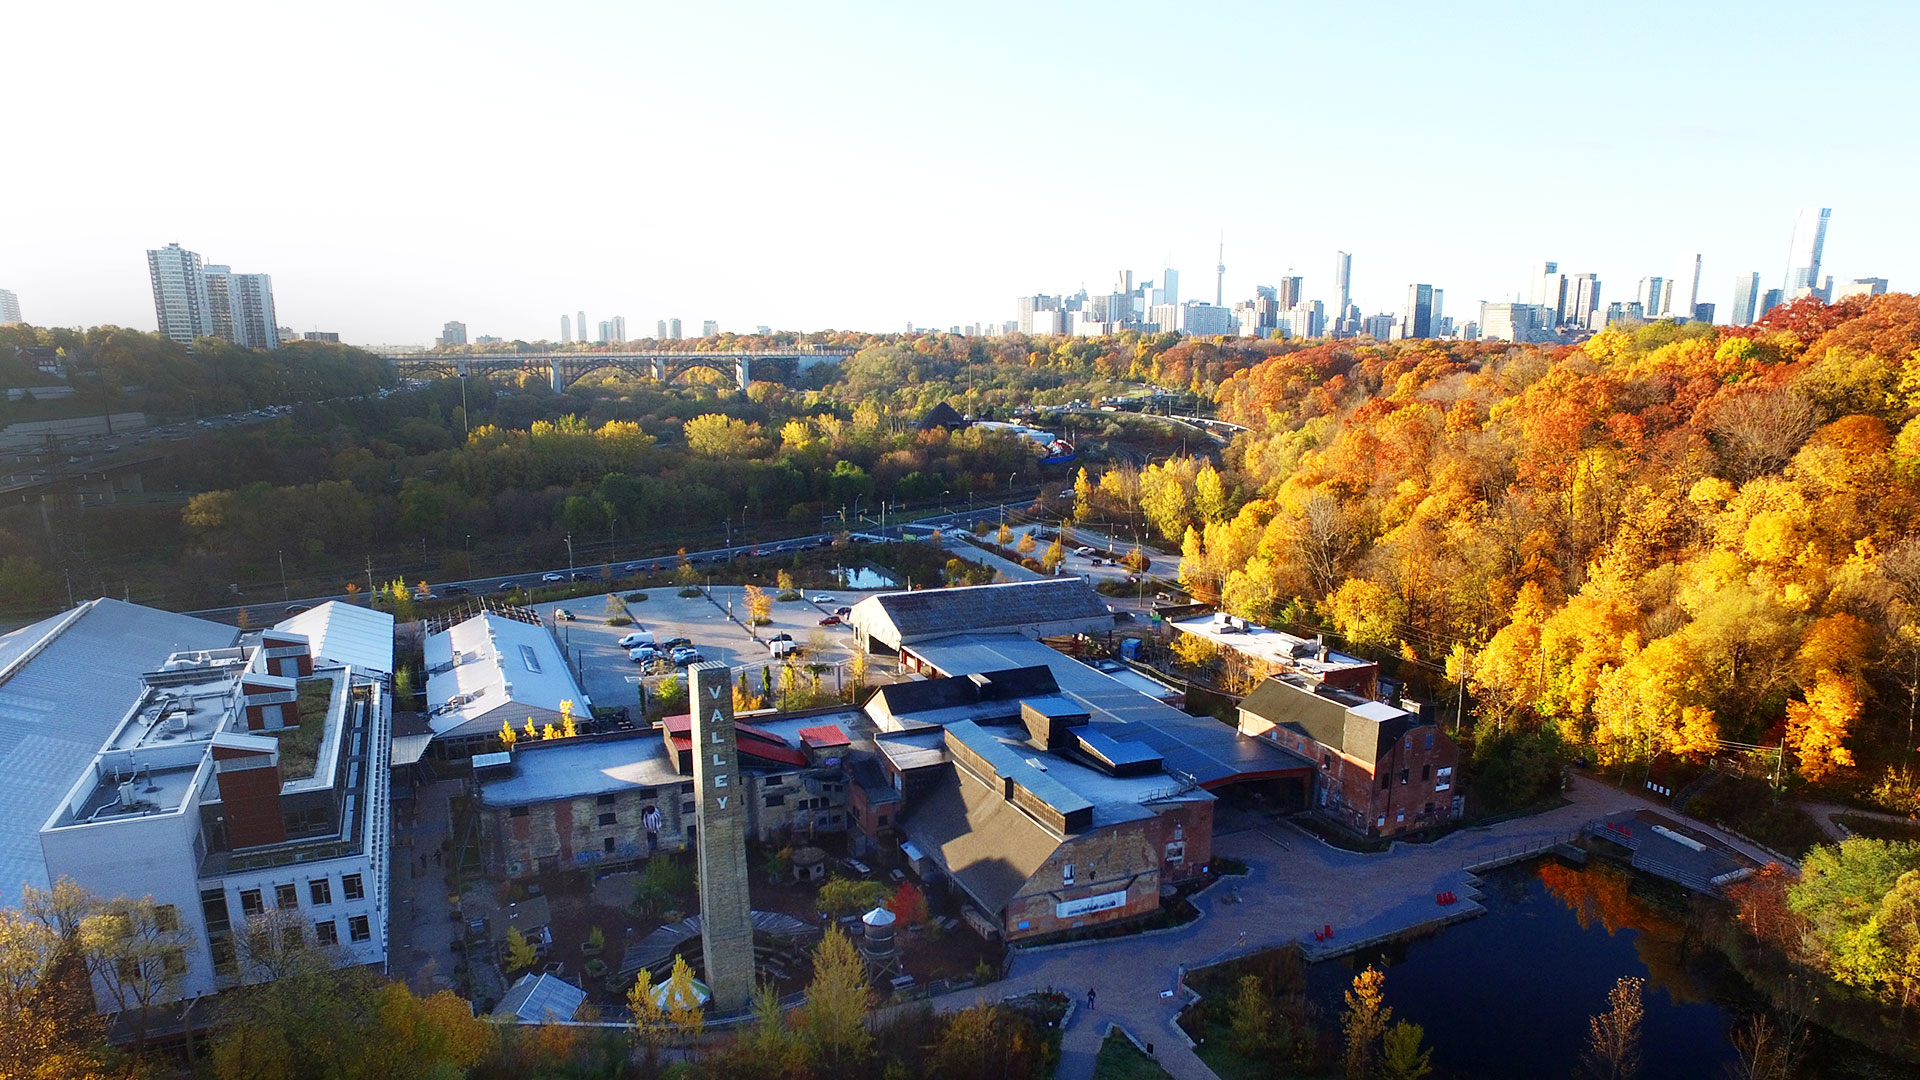 Evergreen Brick Works photo from above.